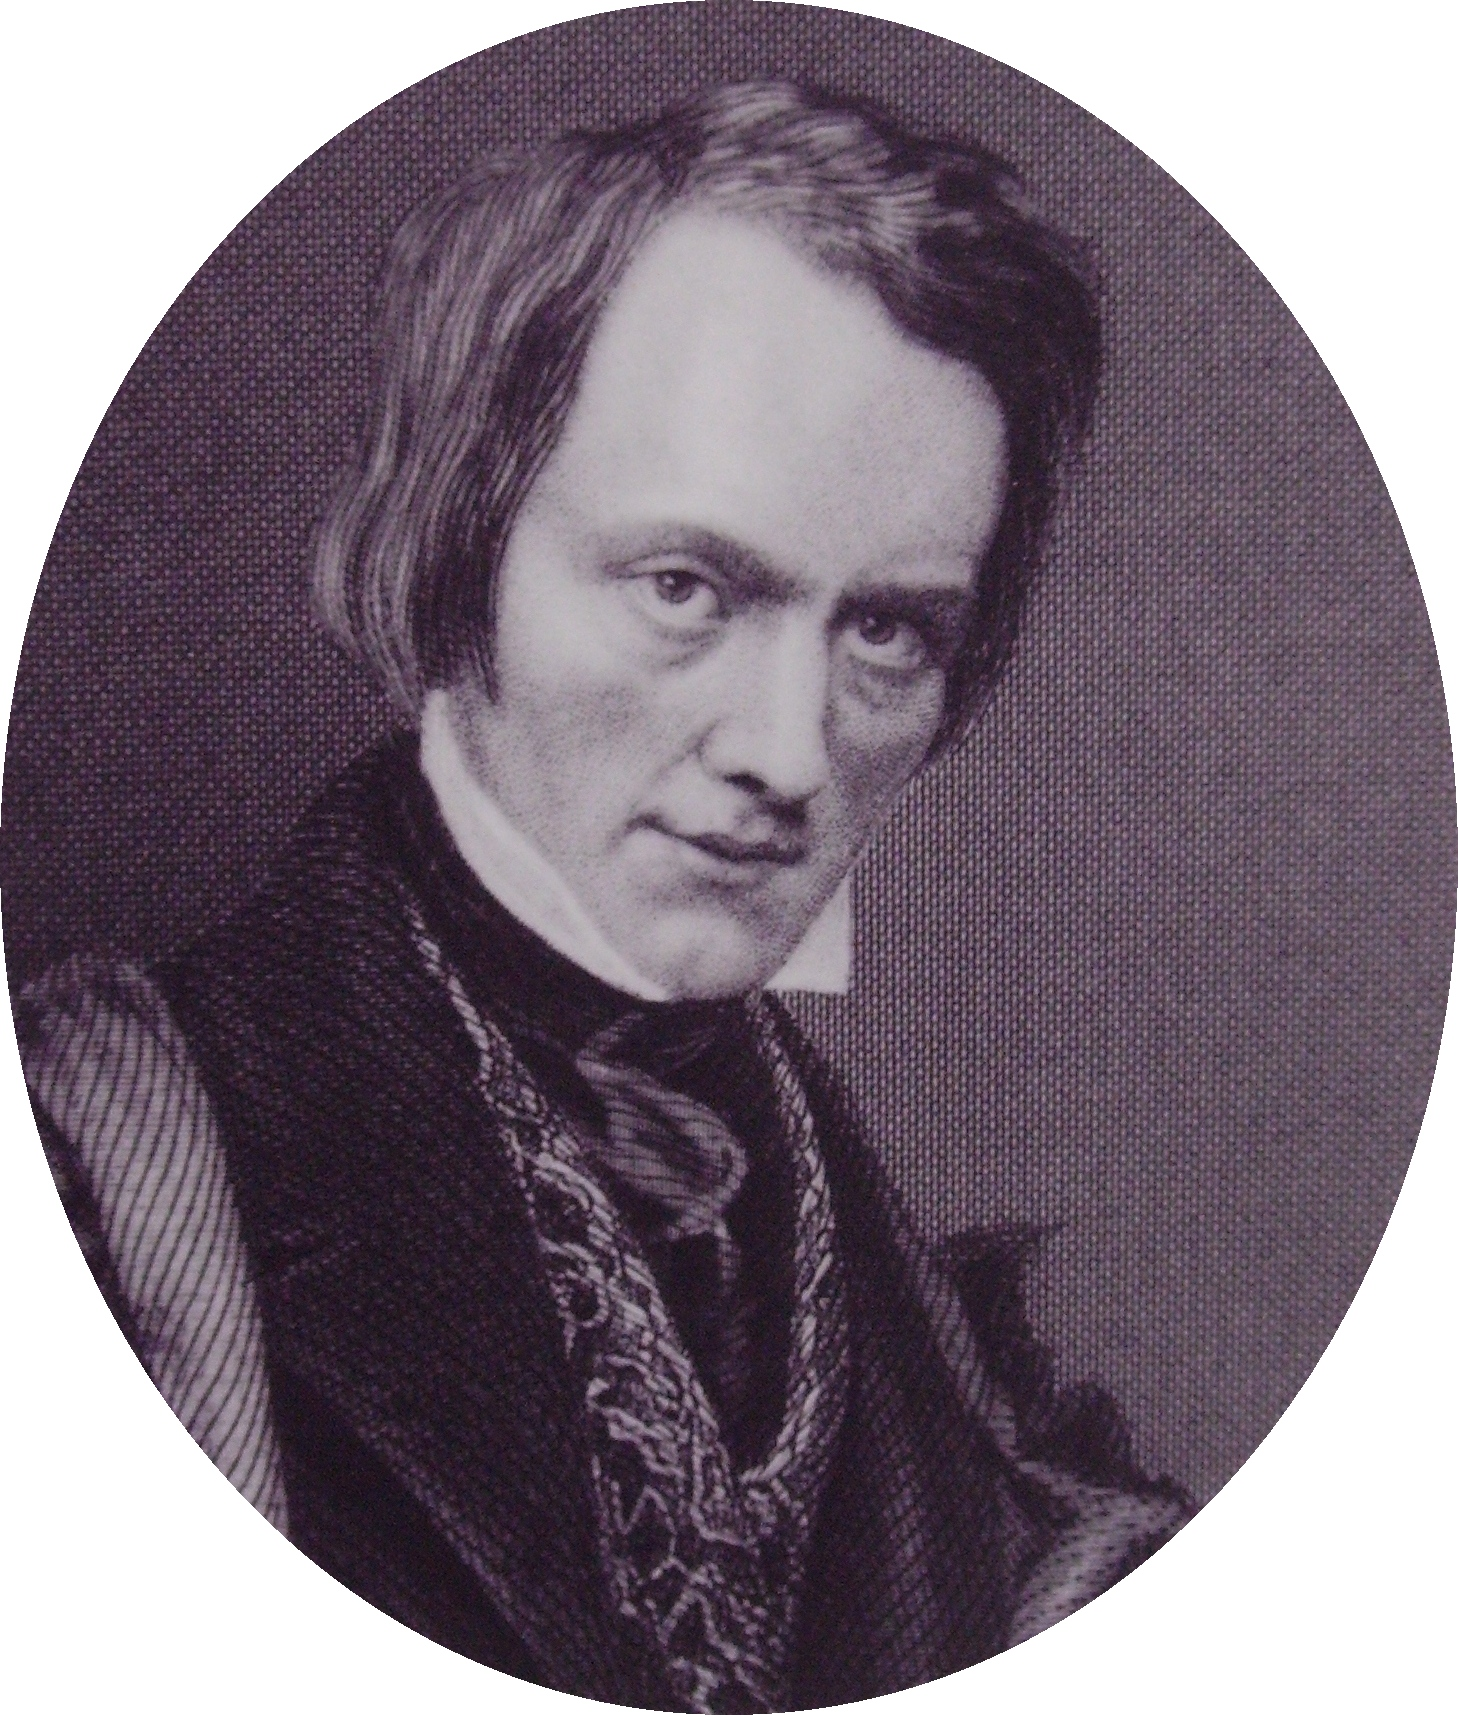 Richard Owen Cambridge's quote #2